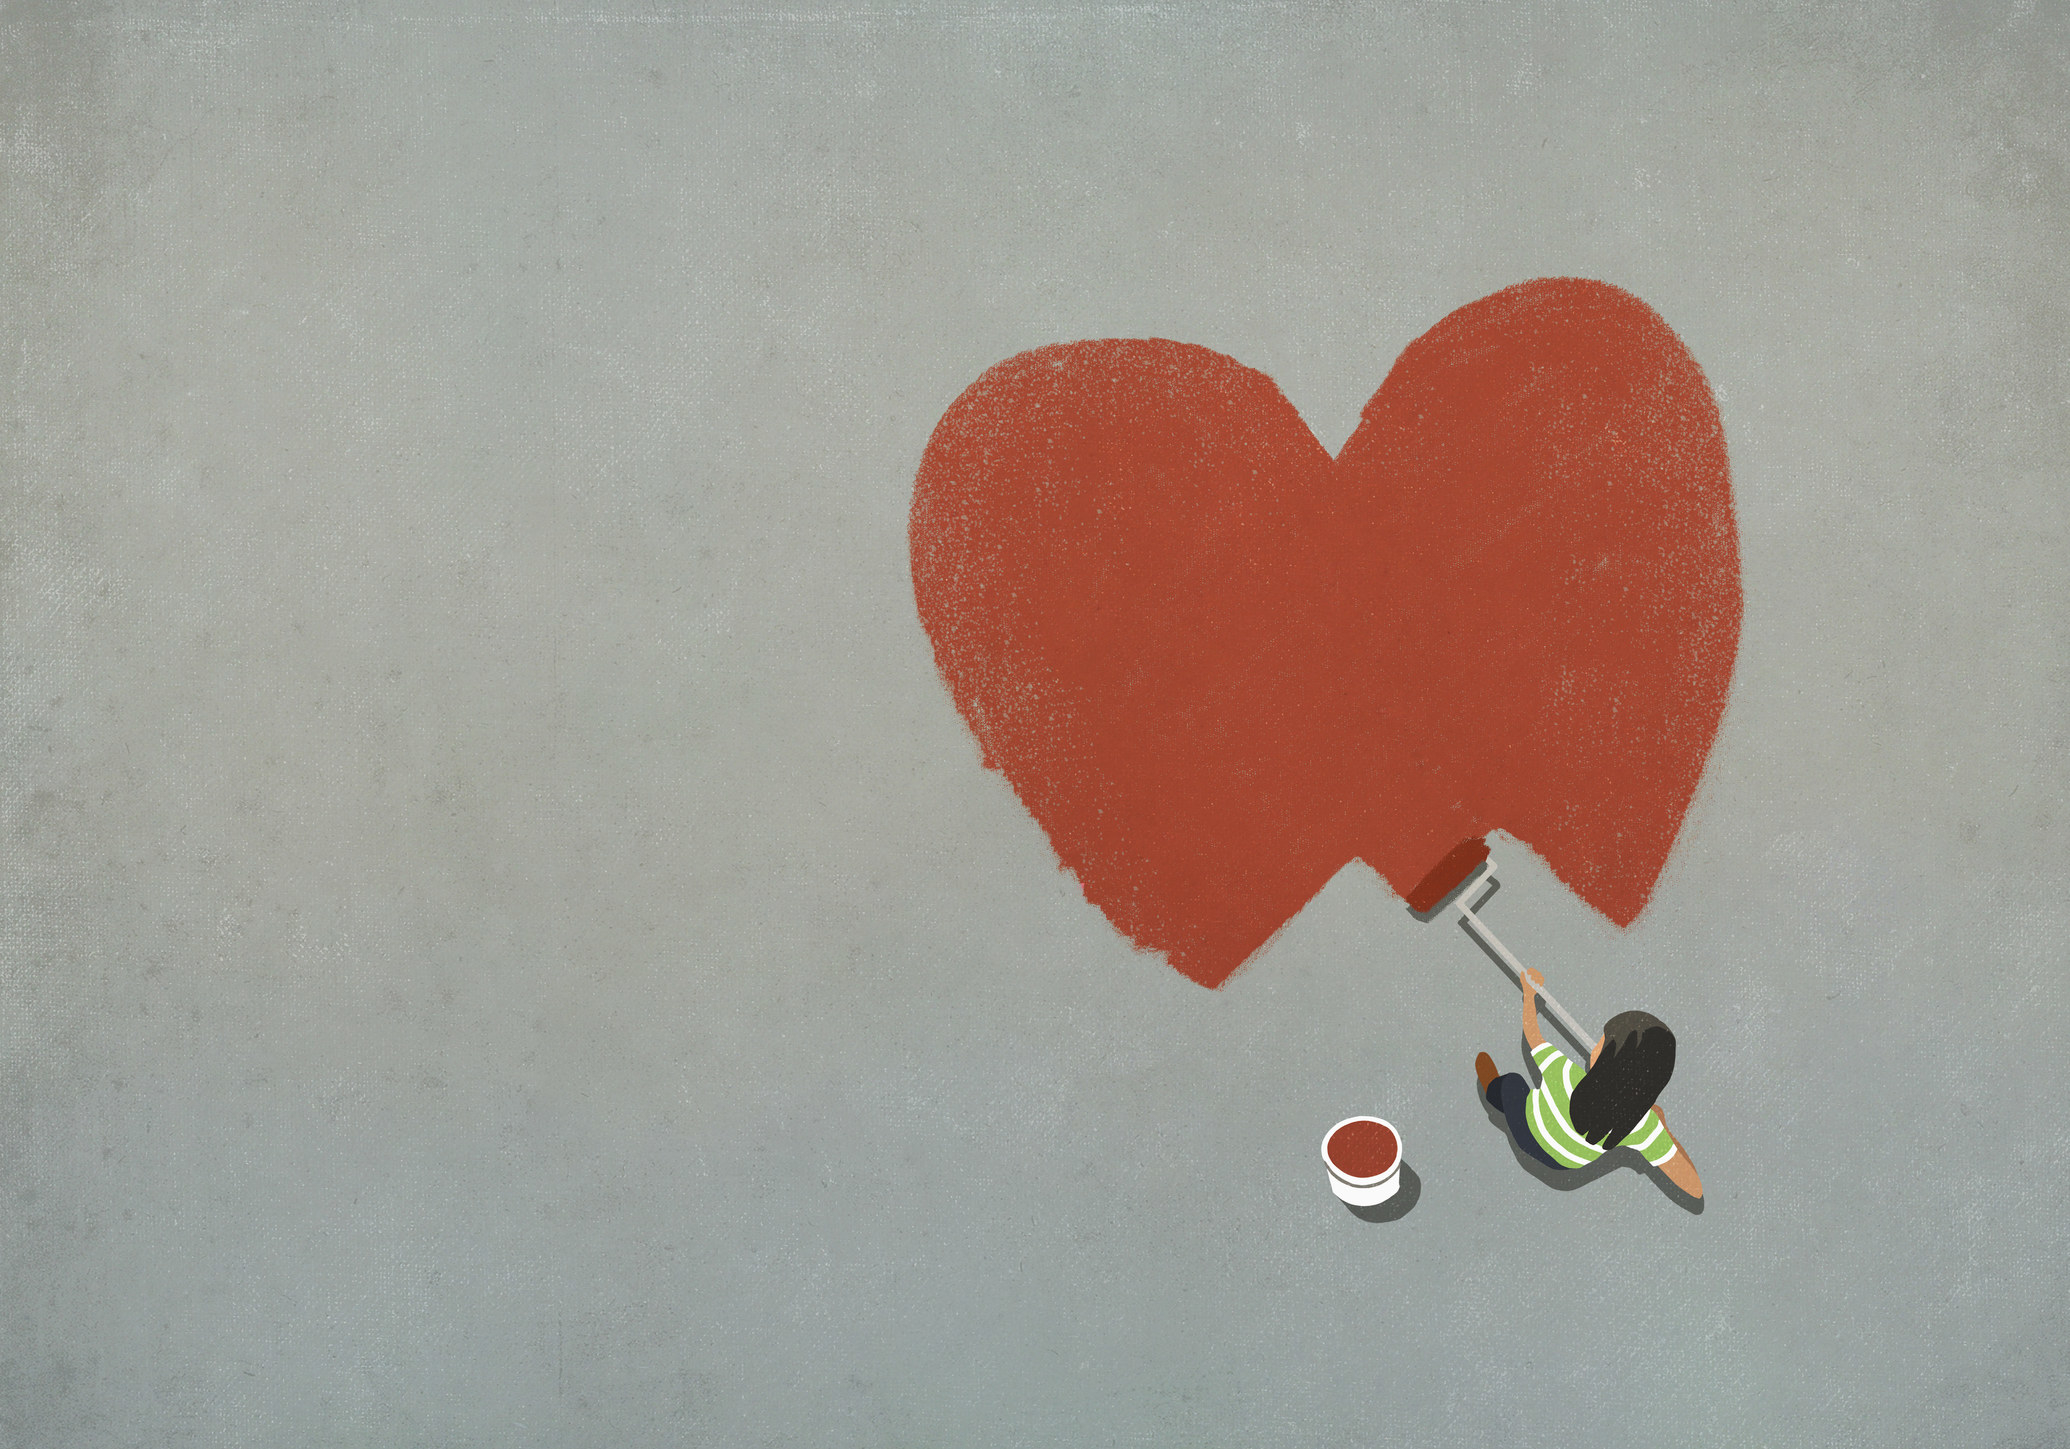 An illustration of a person painting a large heart on the ground